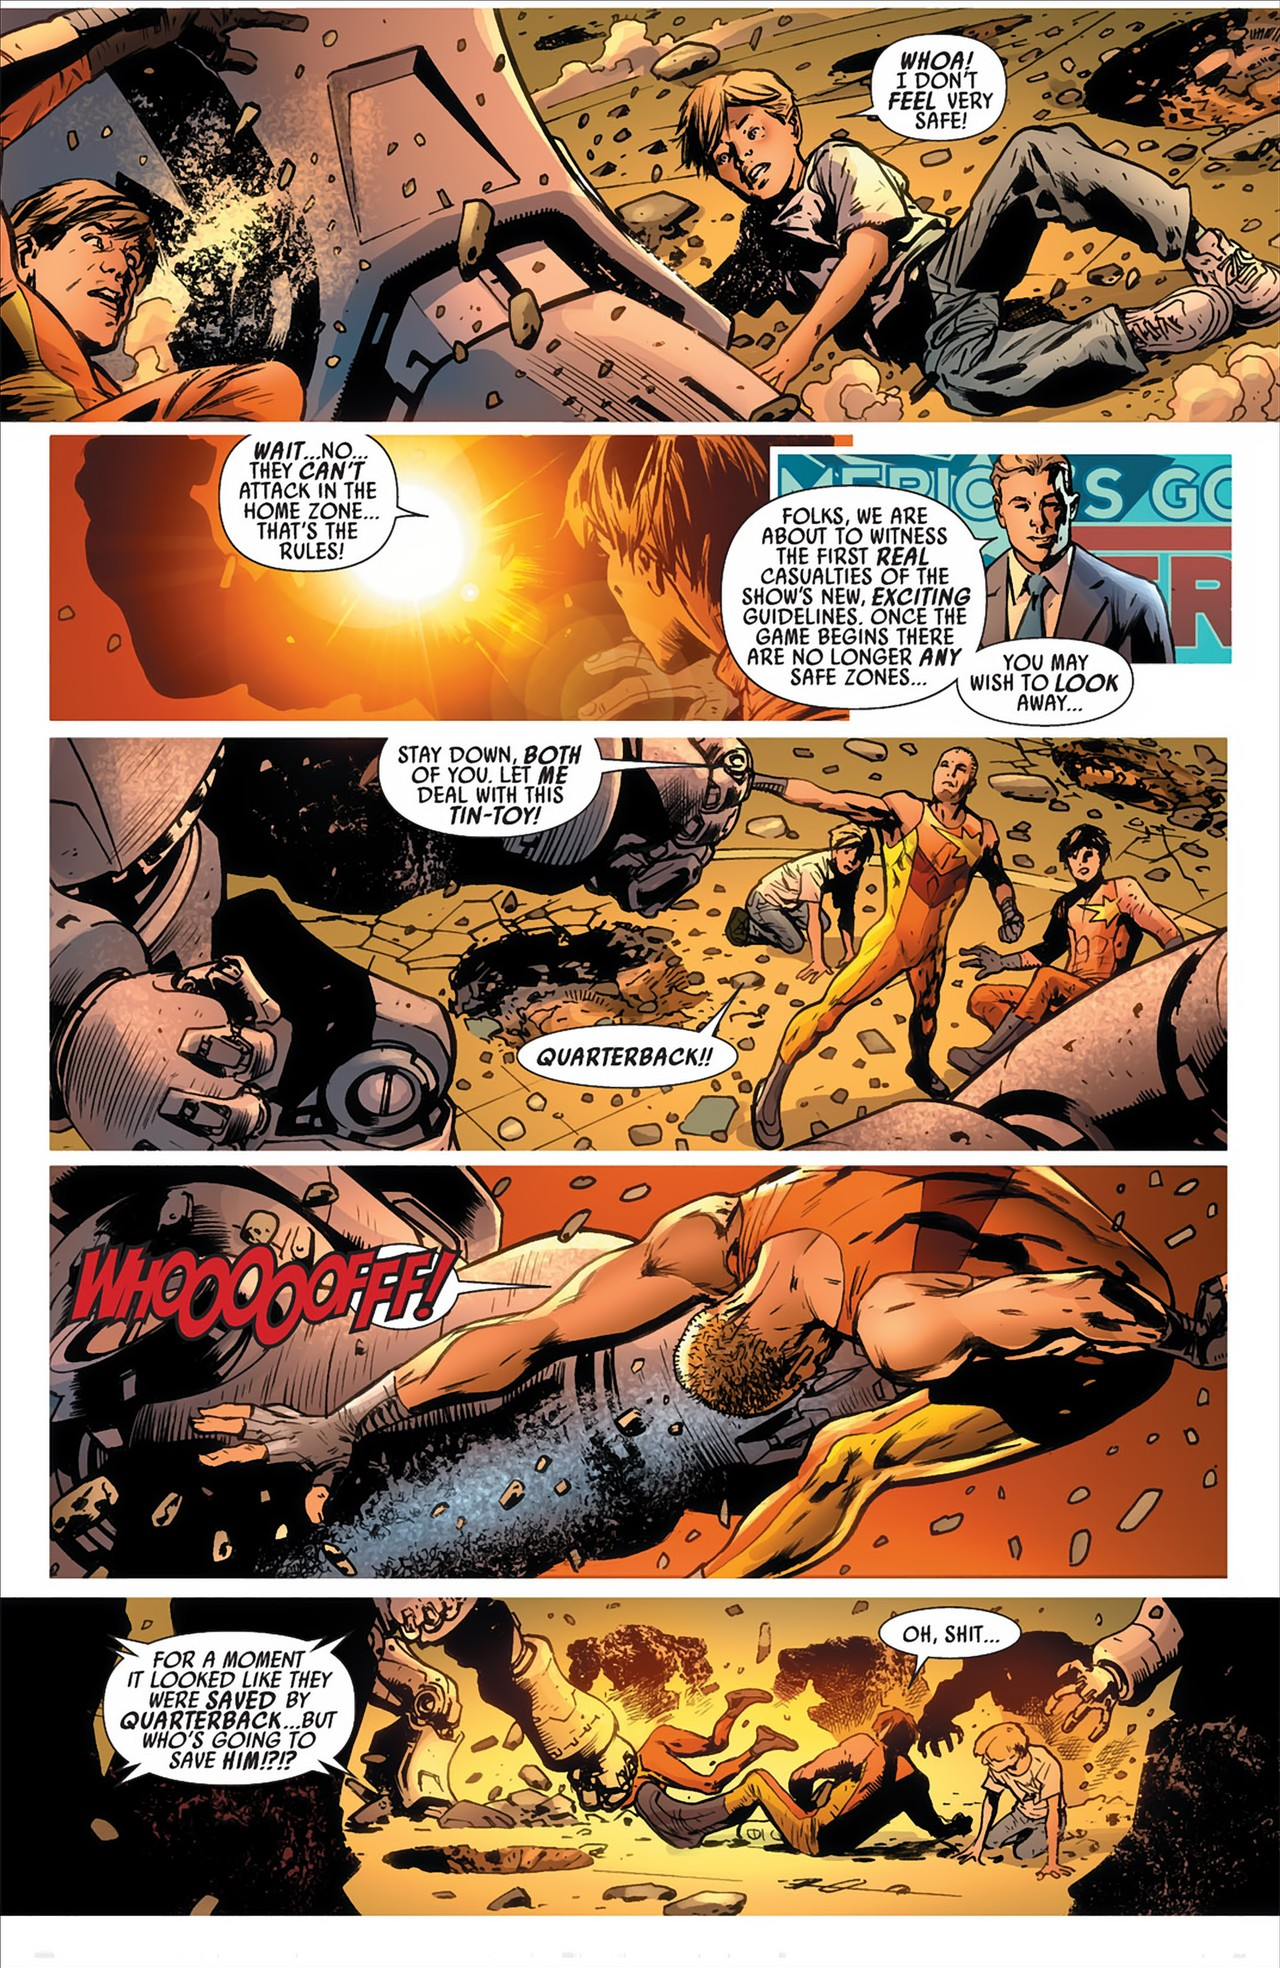 Read online America's Got Powers comic -  Issue #2 - 29